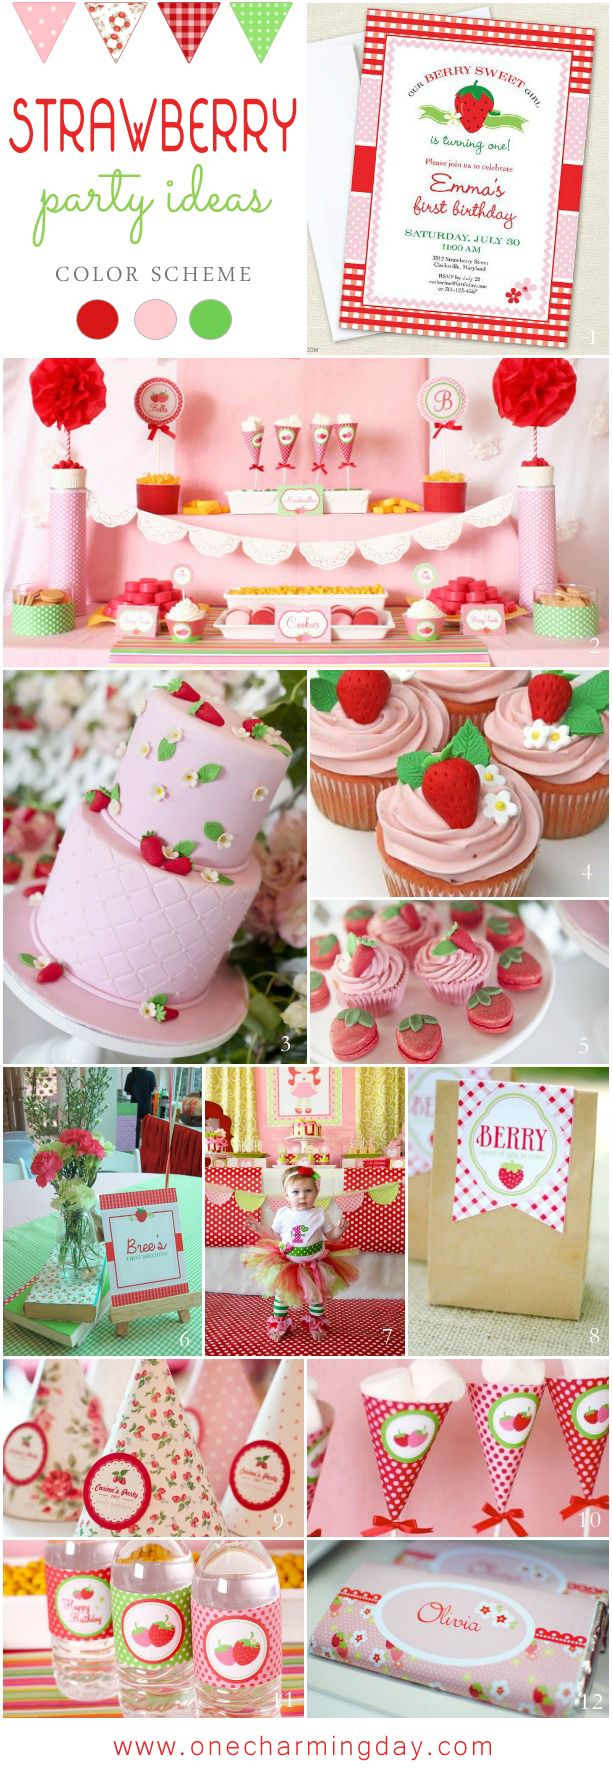 A strawberry themed party is a great choice for a girl's party or a fun, summer celebration. The bright red, sweet pink, and lush green colors of this lovely, s